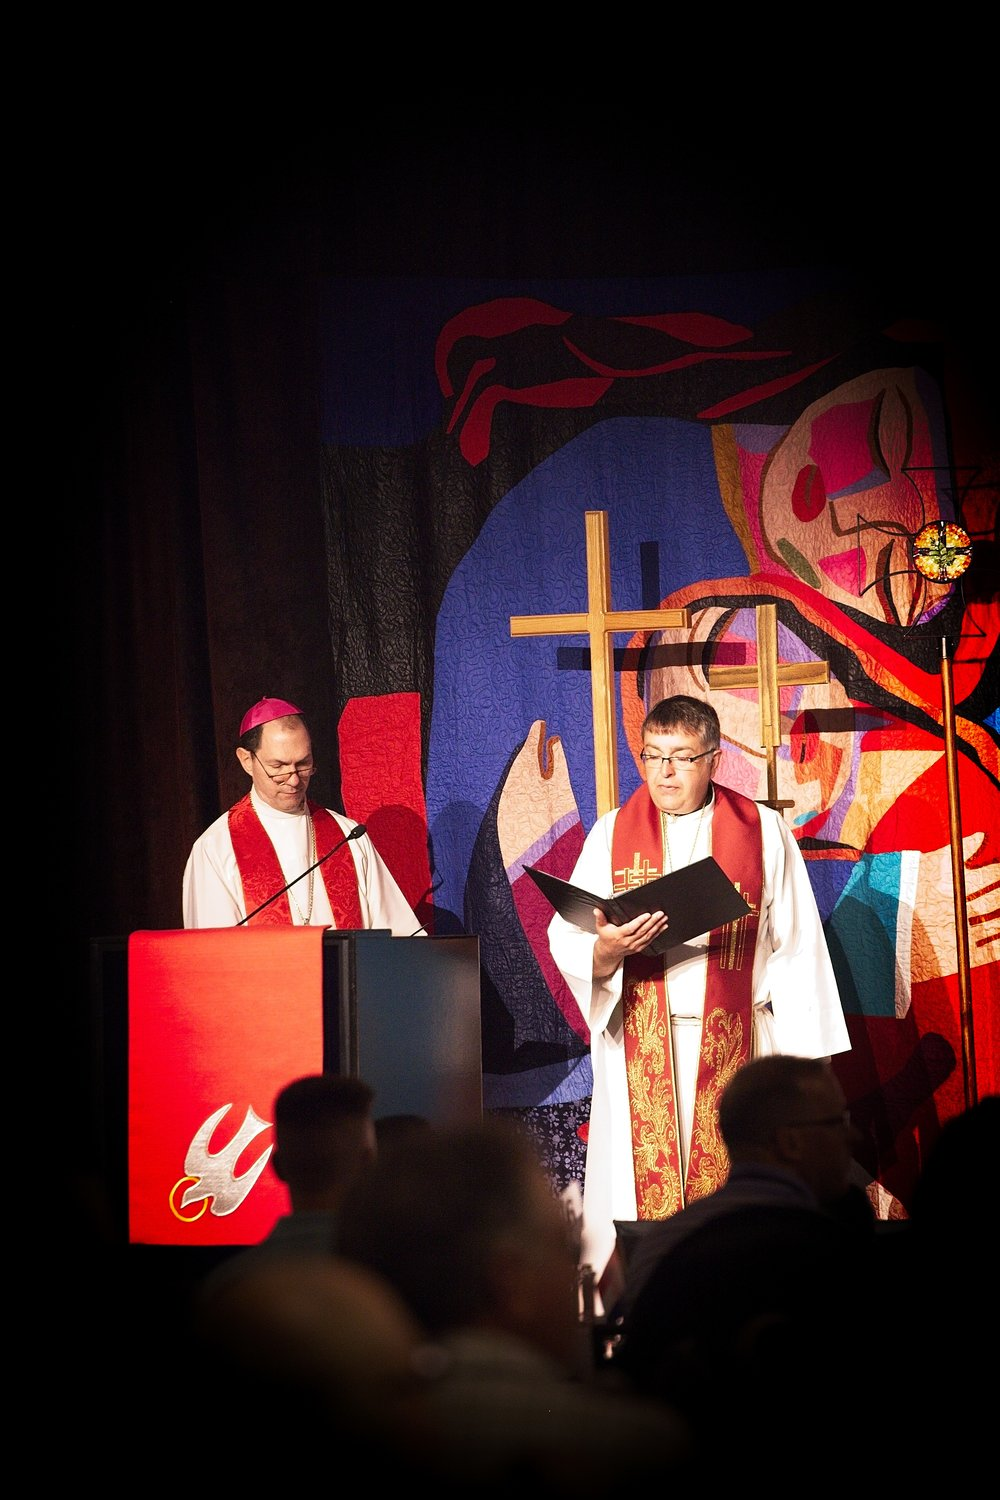 The Catholic Bishop and Lutheran Bishop, leading a service, together.